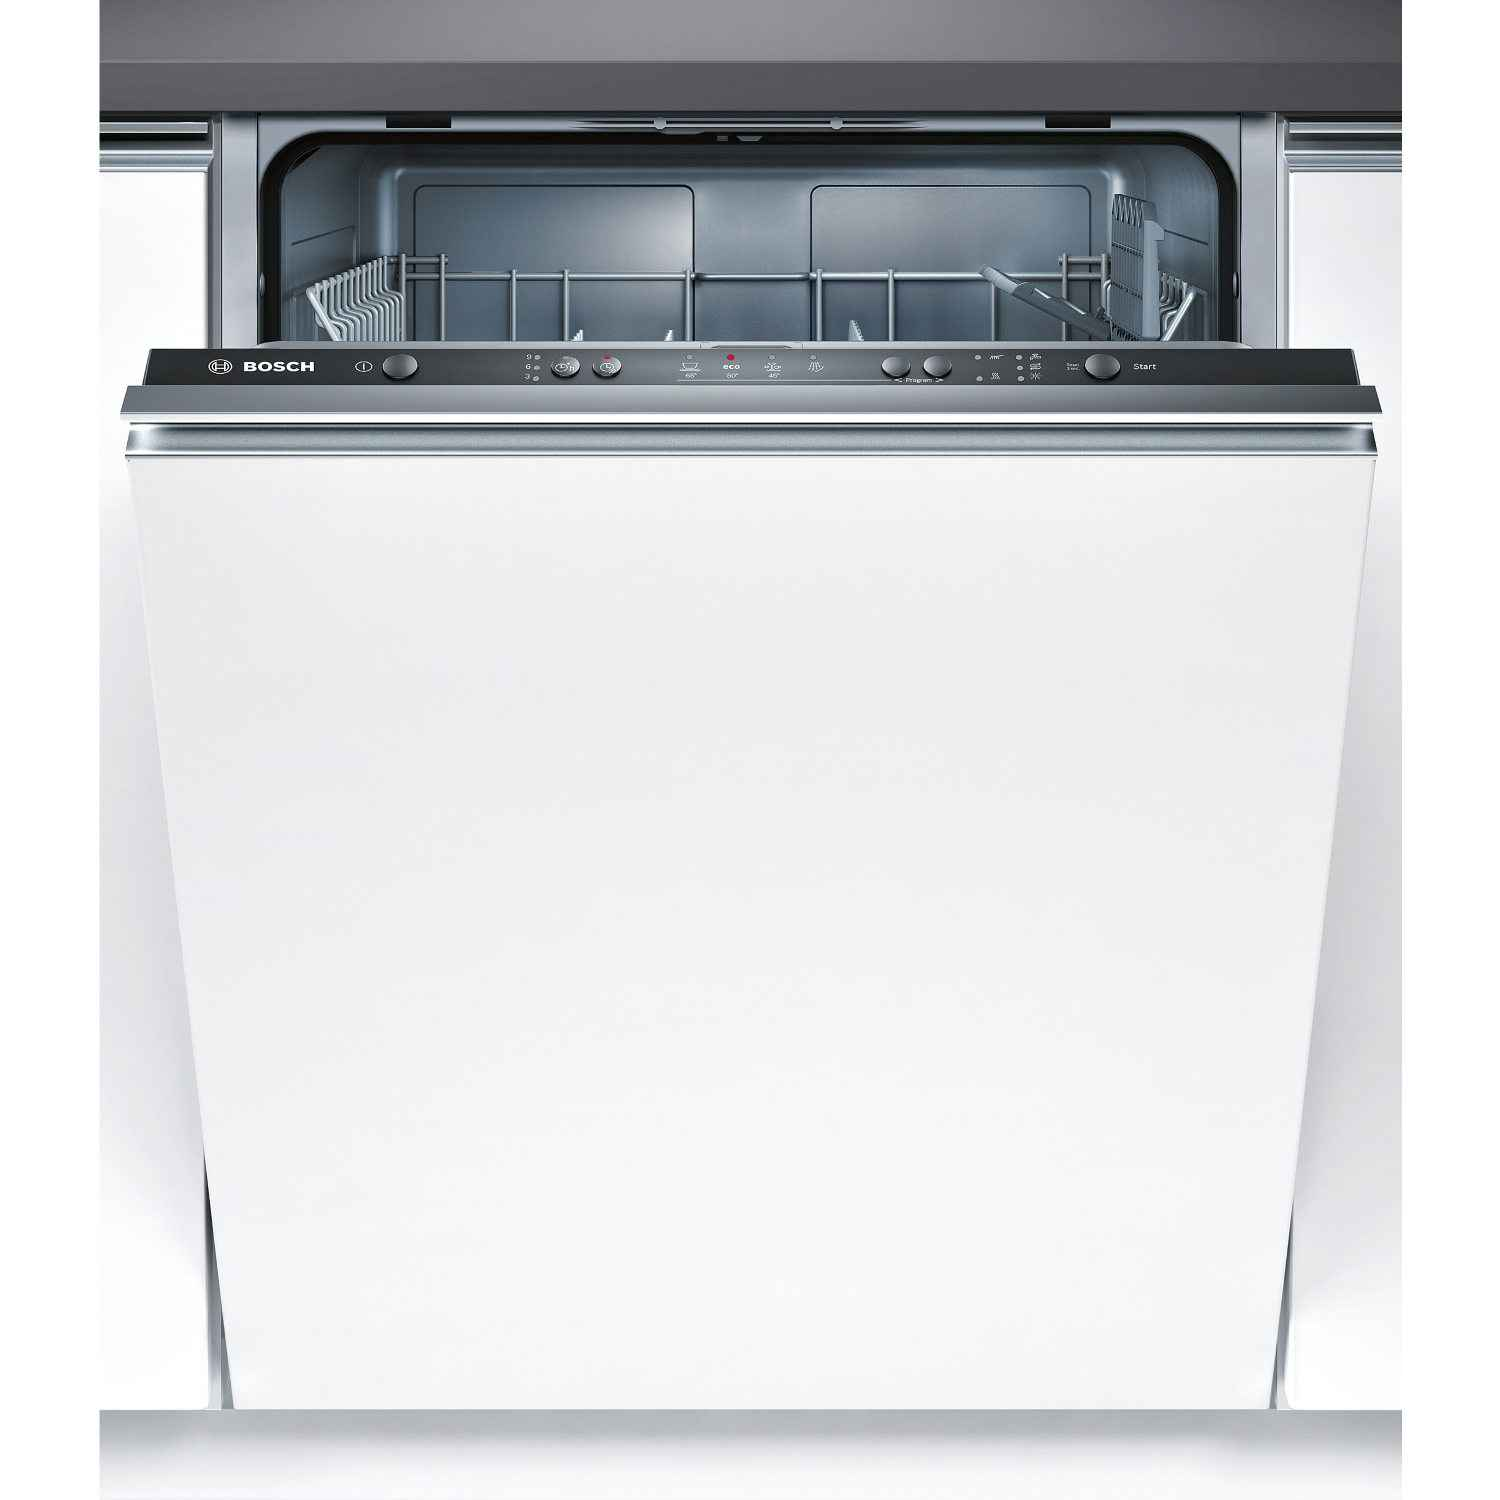 Bosch Built In Full Size Dishwasher SMV40C40GB